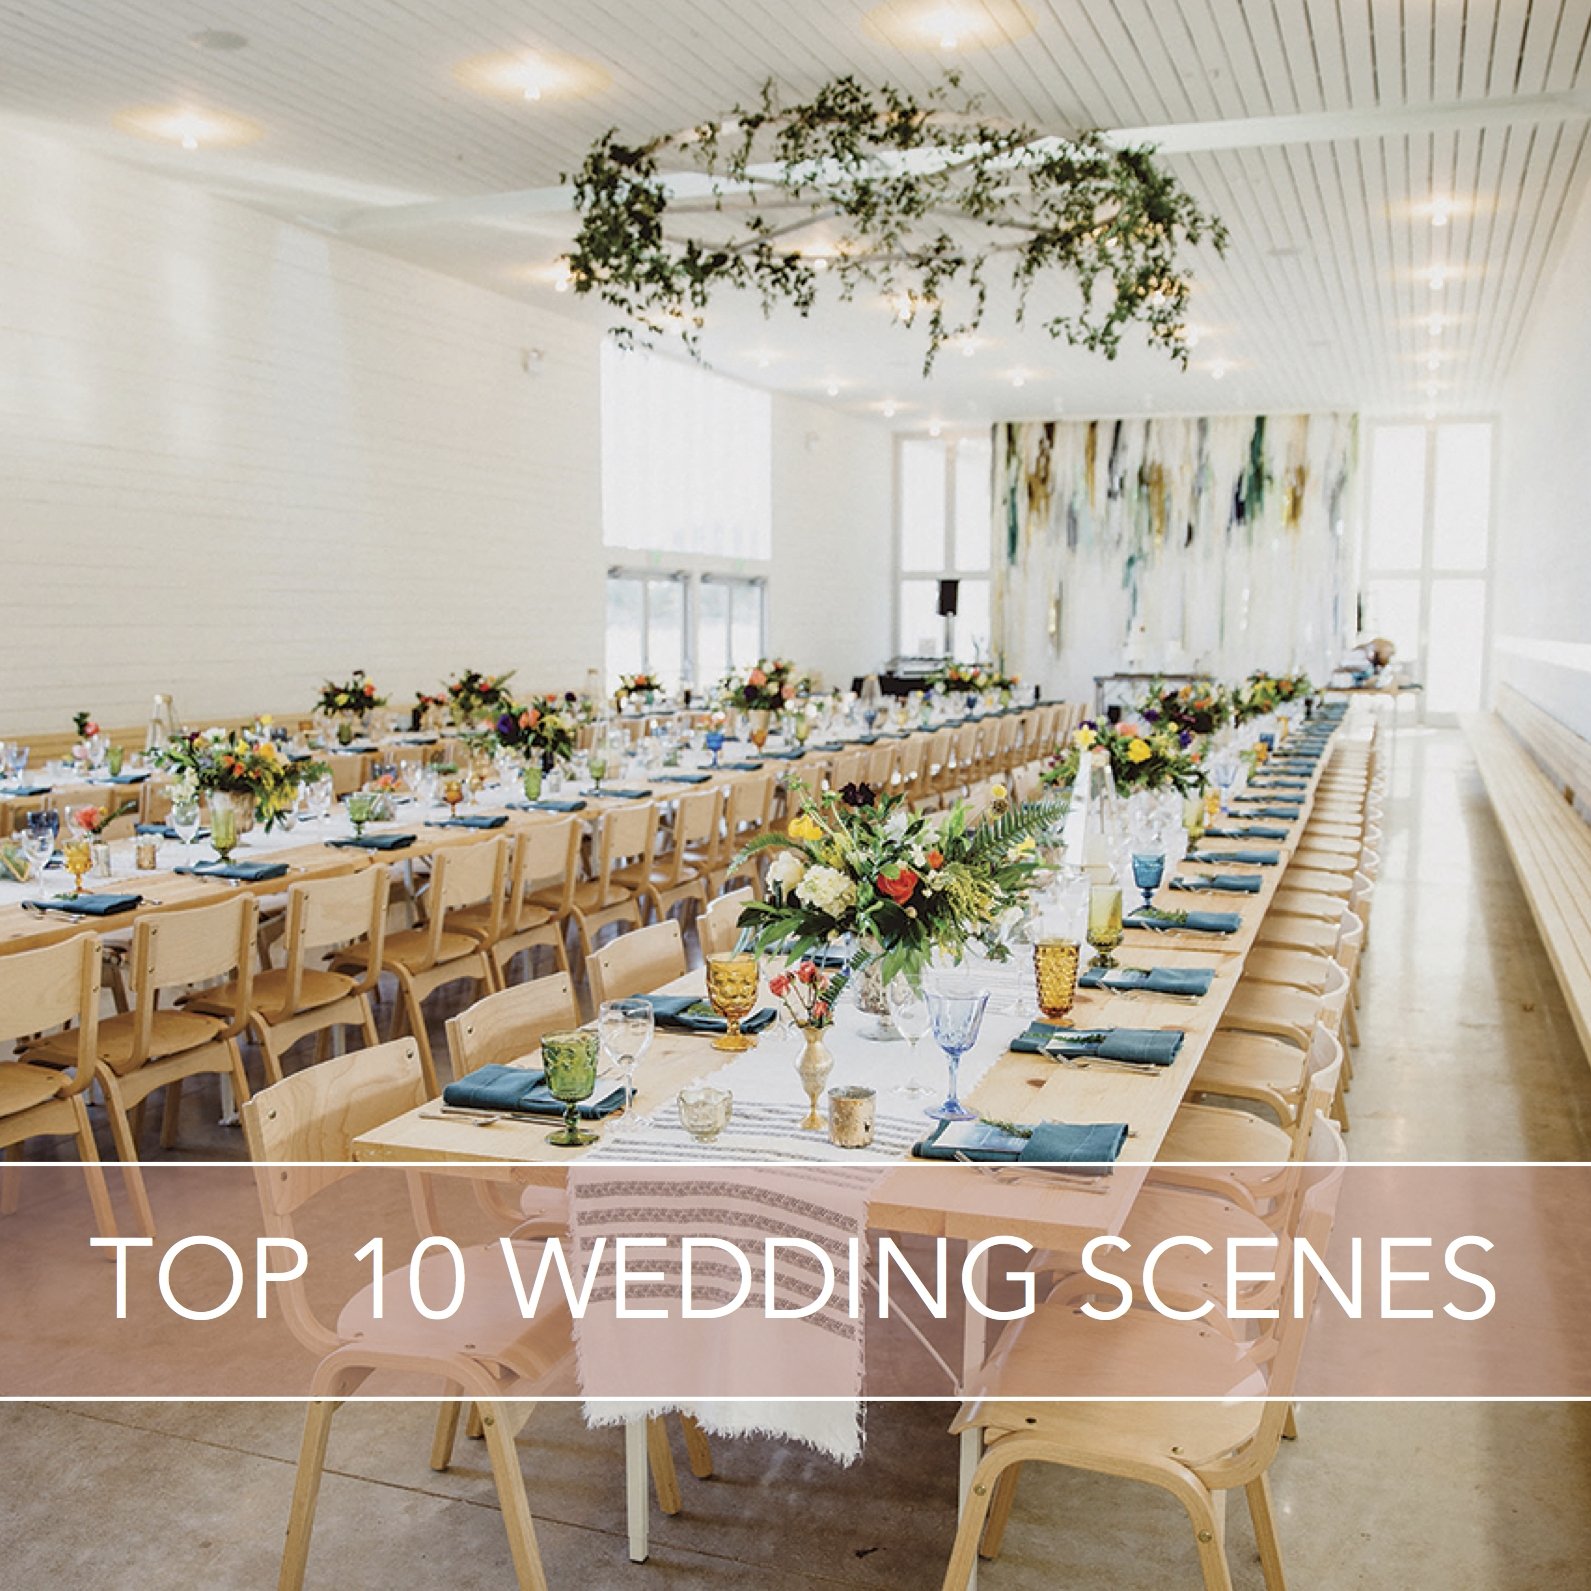 Cassie and Amber's wedding was listed as one of the top 10 wedding scenes of 2016 on Brides of Austin Magazine!